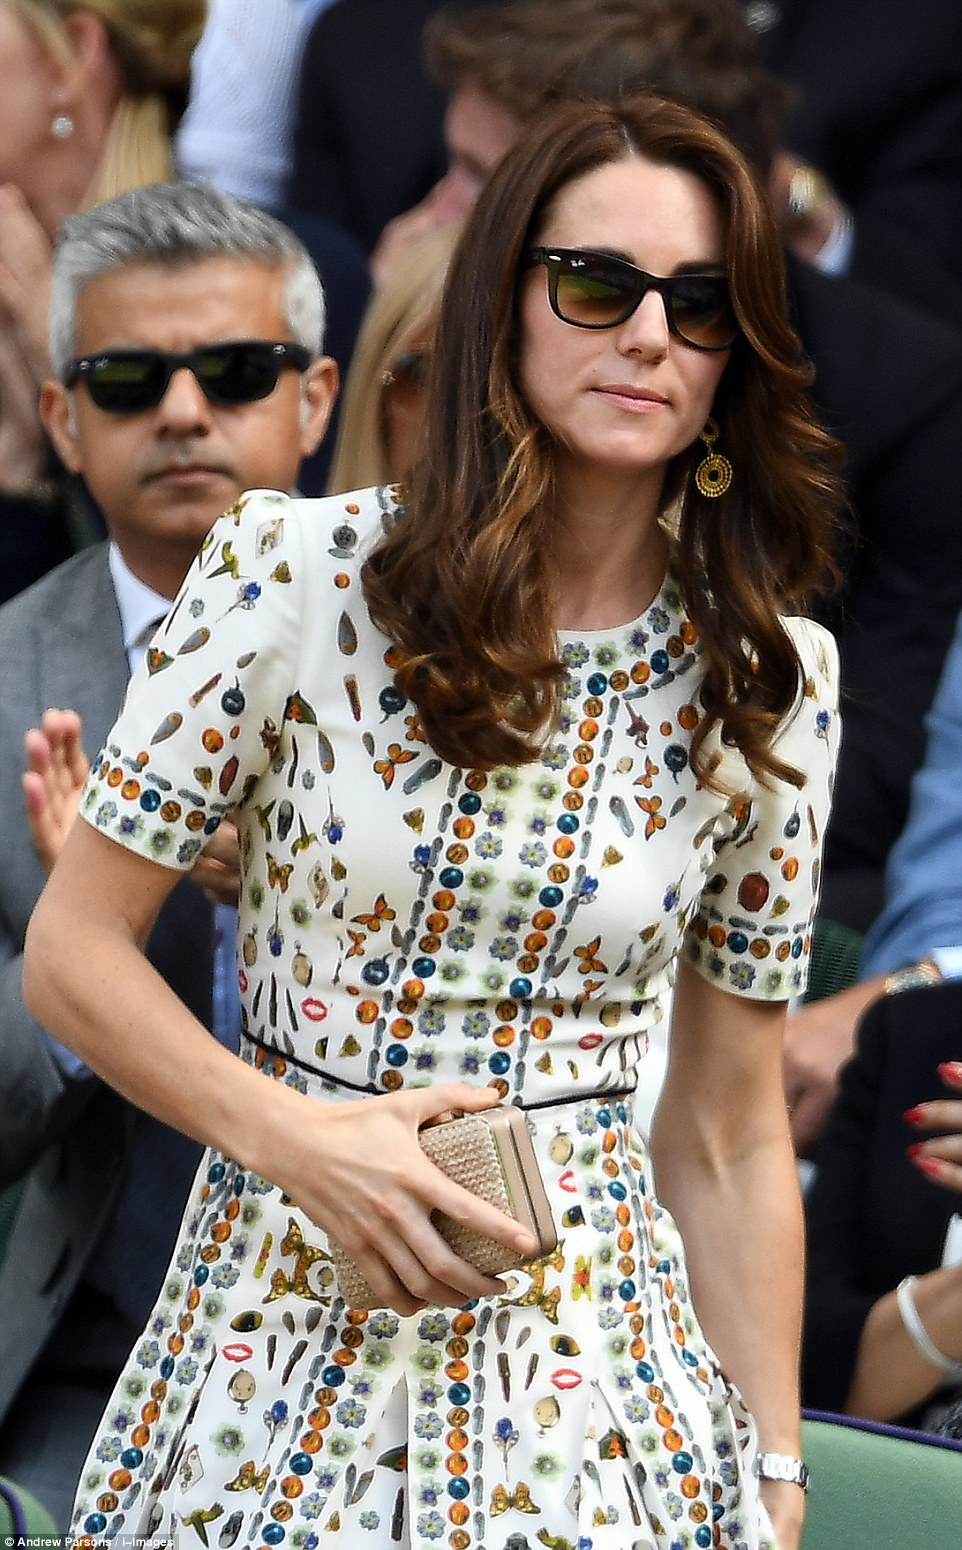 Kate Middleton wears Alexander McQueen to watch the 2016 Wimbledon Final